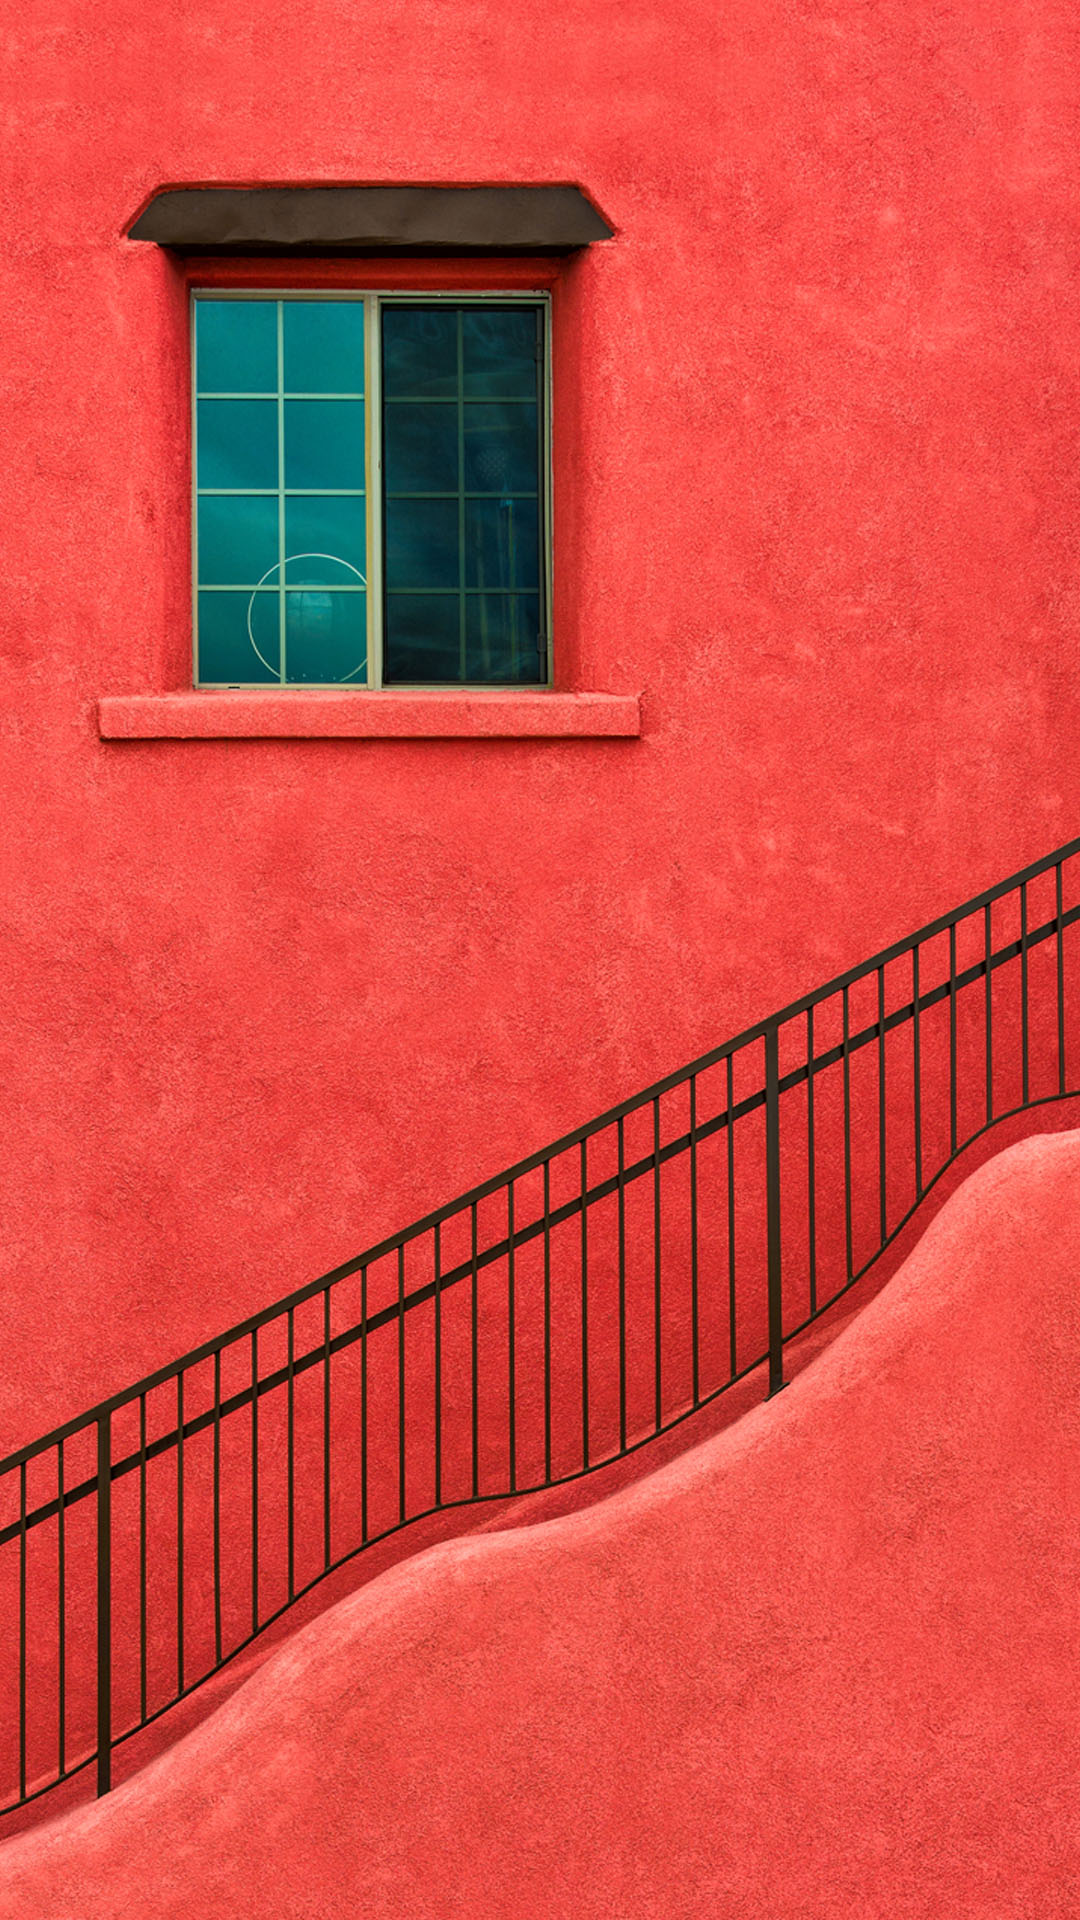 Red House Wall Window Stairs Best htc one wallpapers